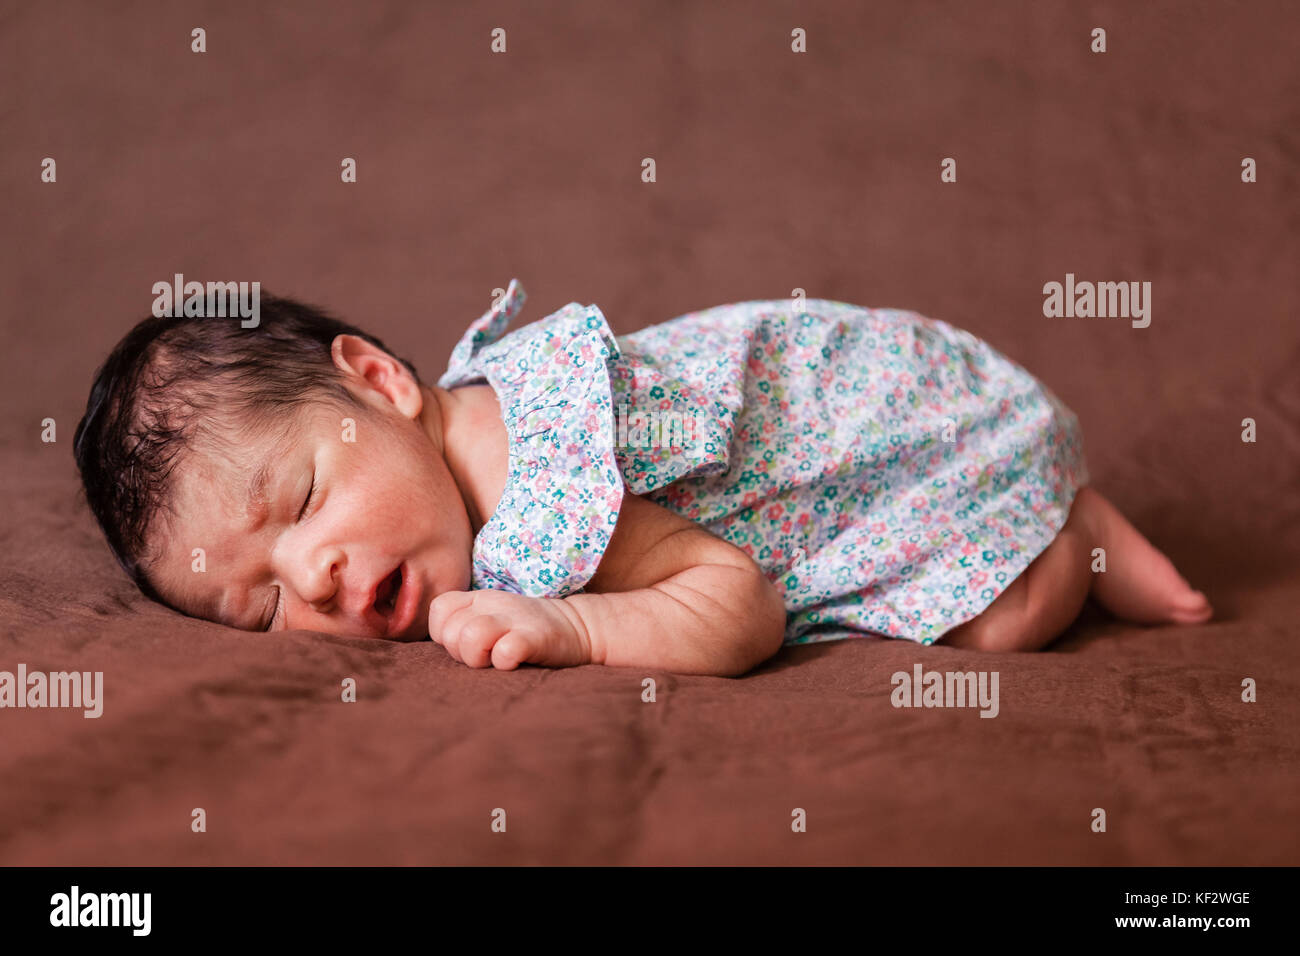 Cute two weeks old newborn baby girl wearing a floral dress, sleeping peacefully in bed in fetal position / newborn - Stock Image